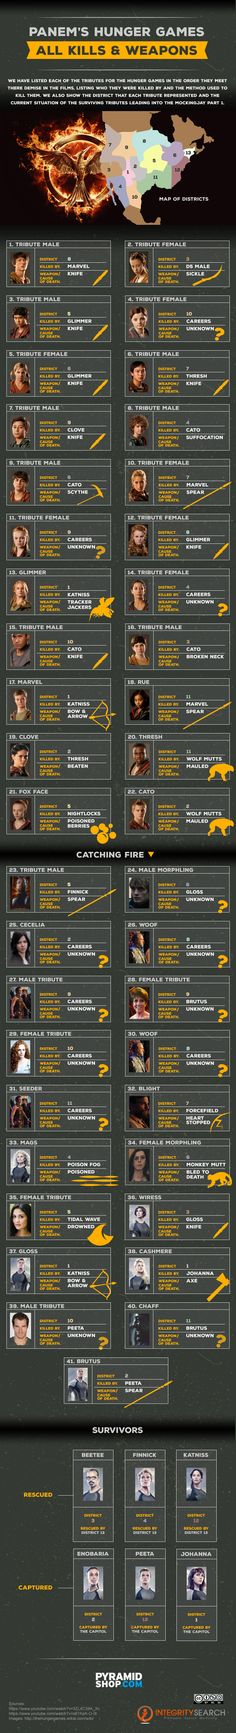 But Johanna is from District 7 and Woof isn't killed twice